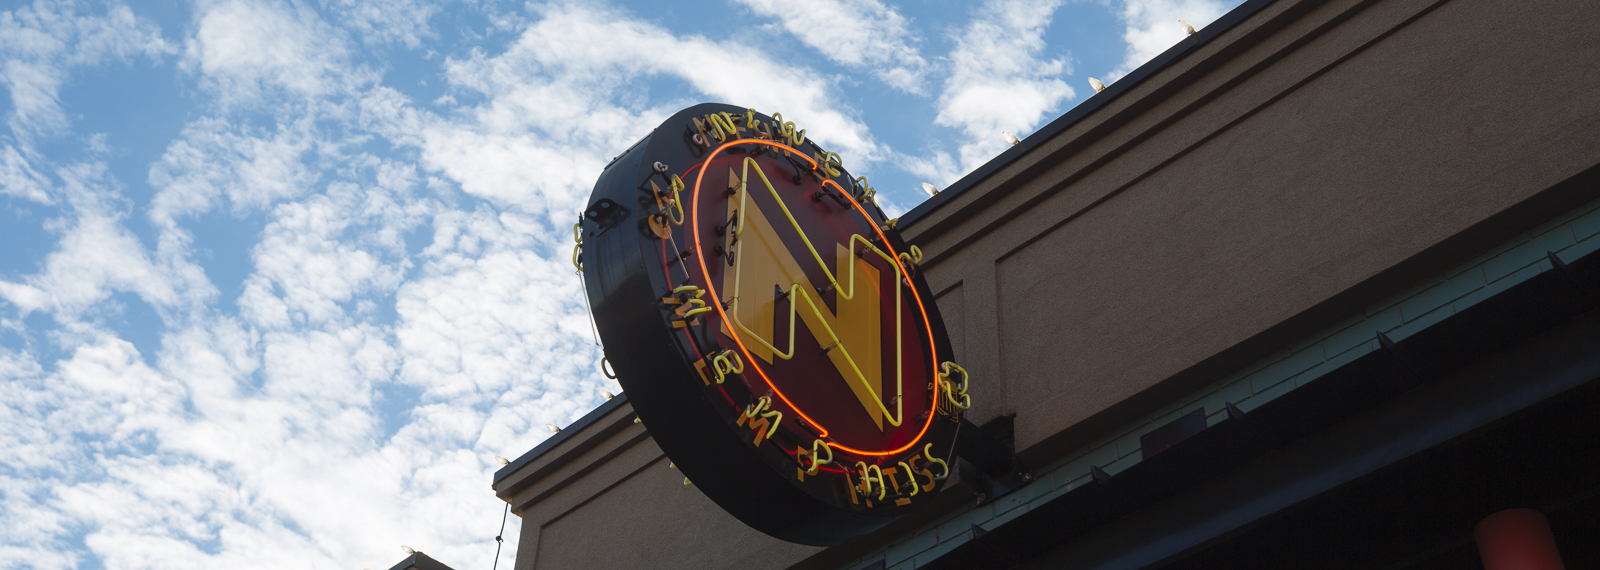 A sunny view of neighborhood bar Newby&apos;s located in the University District. (Ziggy Mack) <span class=&apos;image-credits&apos;></span>